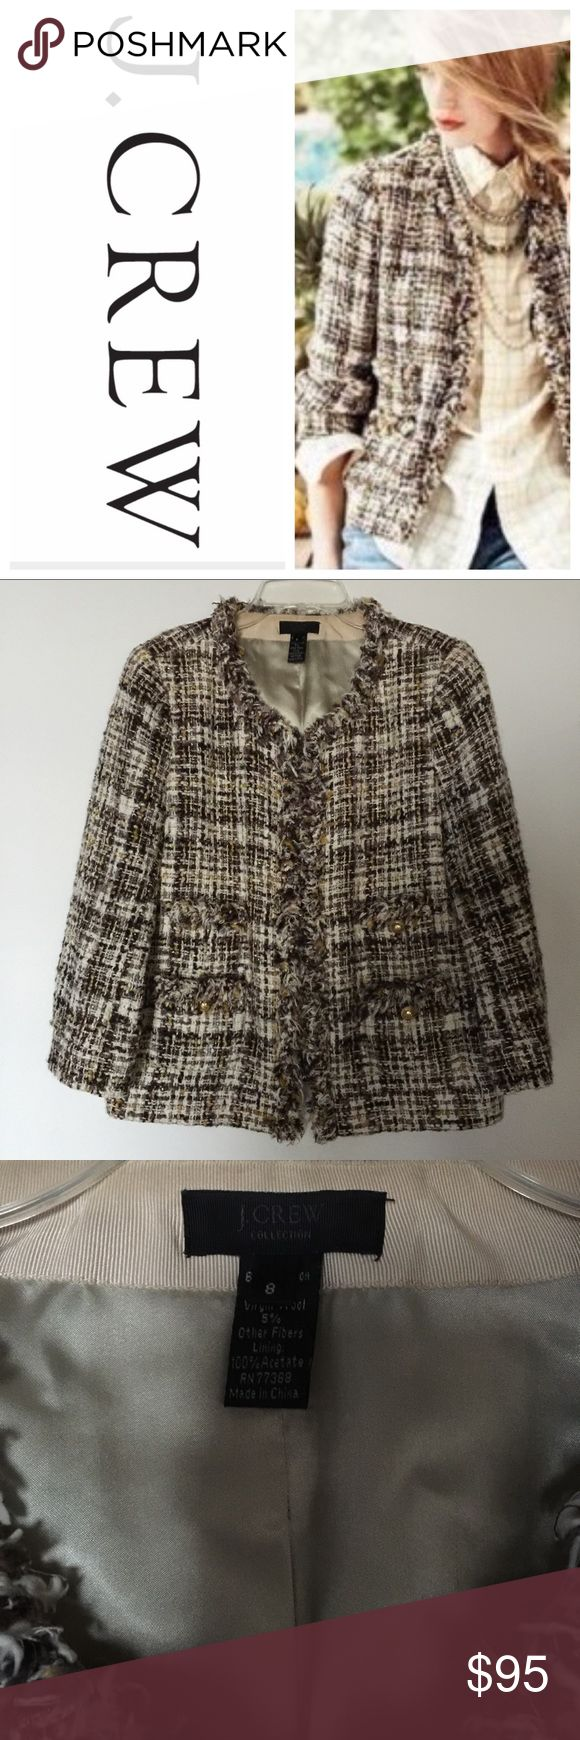 J Crew Collection jacket - size 8 J Crew Collection jacket - size 8. Gorgeous tweed with raw edge trim. Two hook-and-eye closures. Fully lined. Cotton and virgin wool. Excellent condition. J. Crew Jackets & Coats